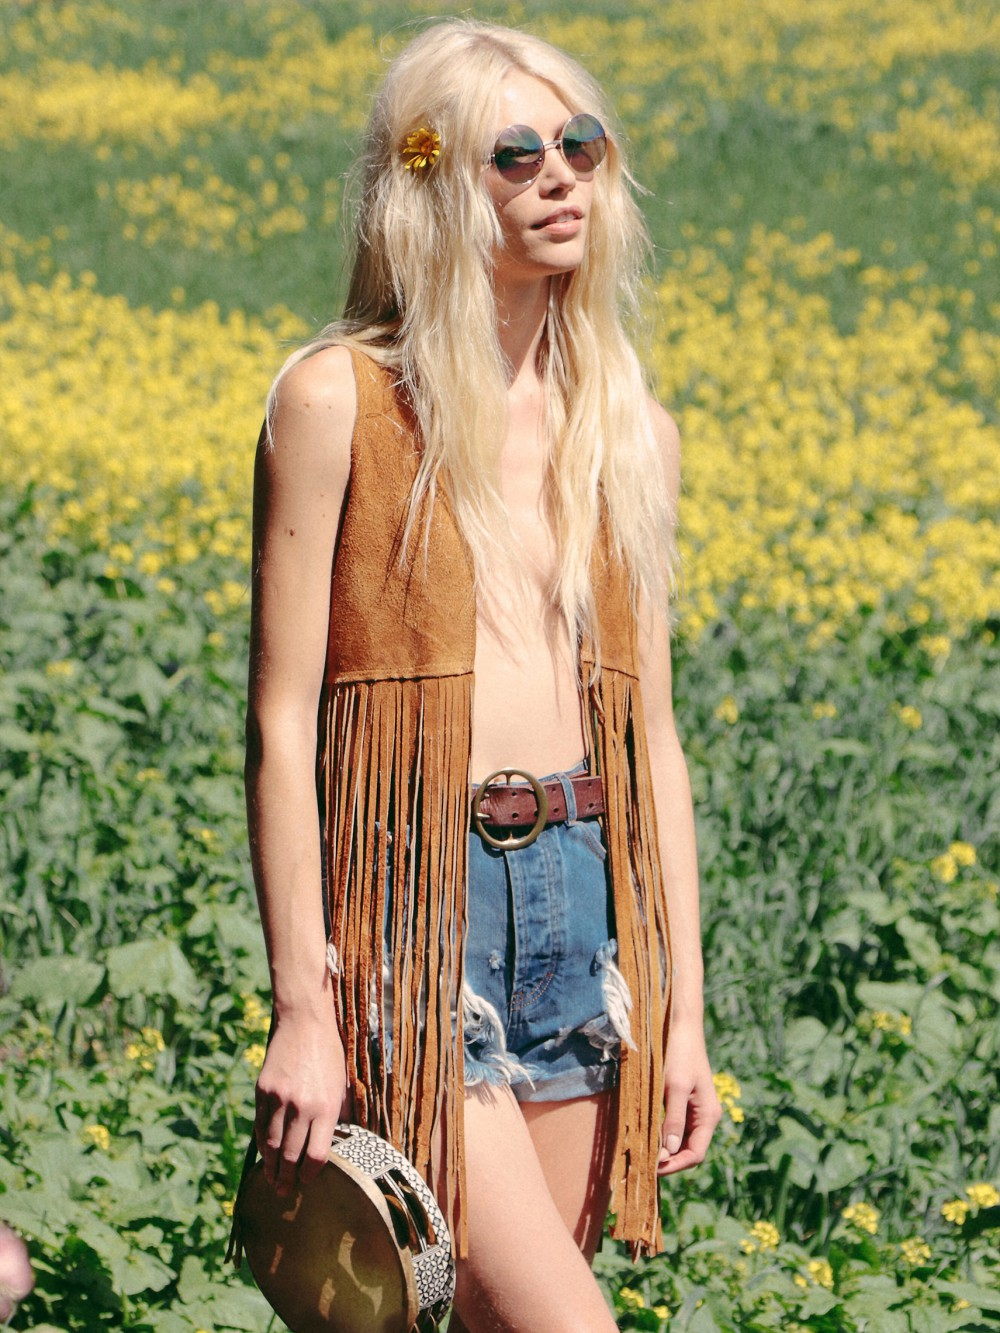 Hippie Festival Outfits and Fashion for Women at Free People